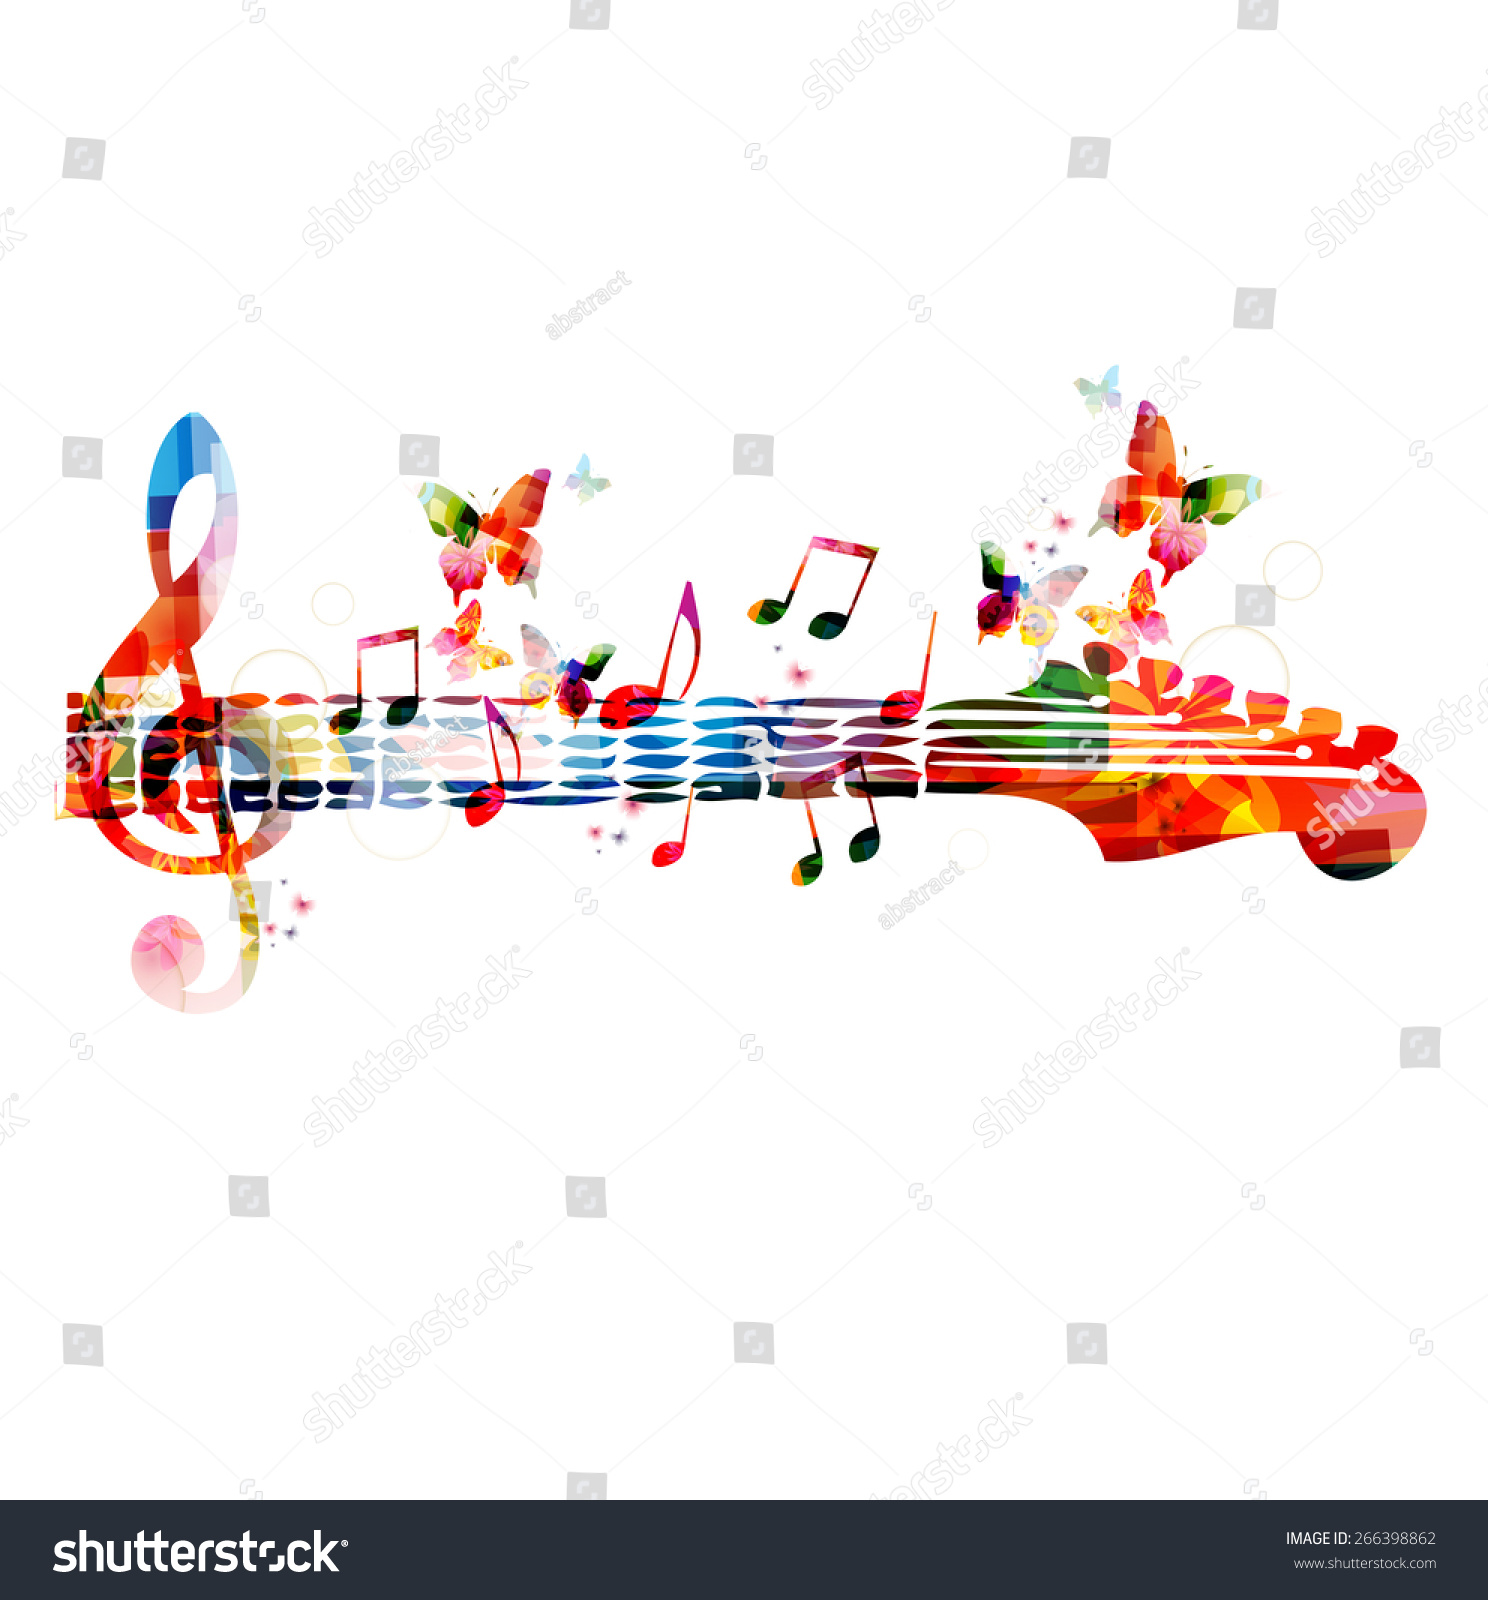 music design wwwpixsharkcom images galleries with a